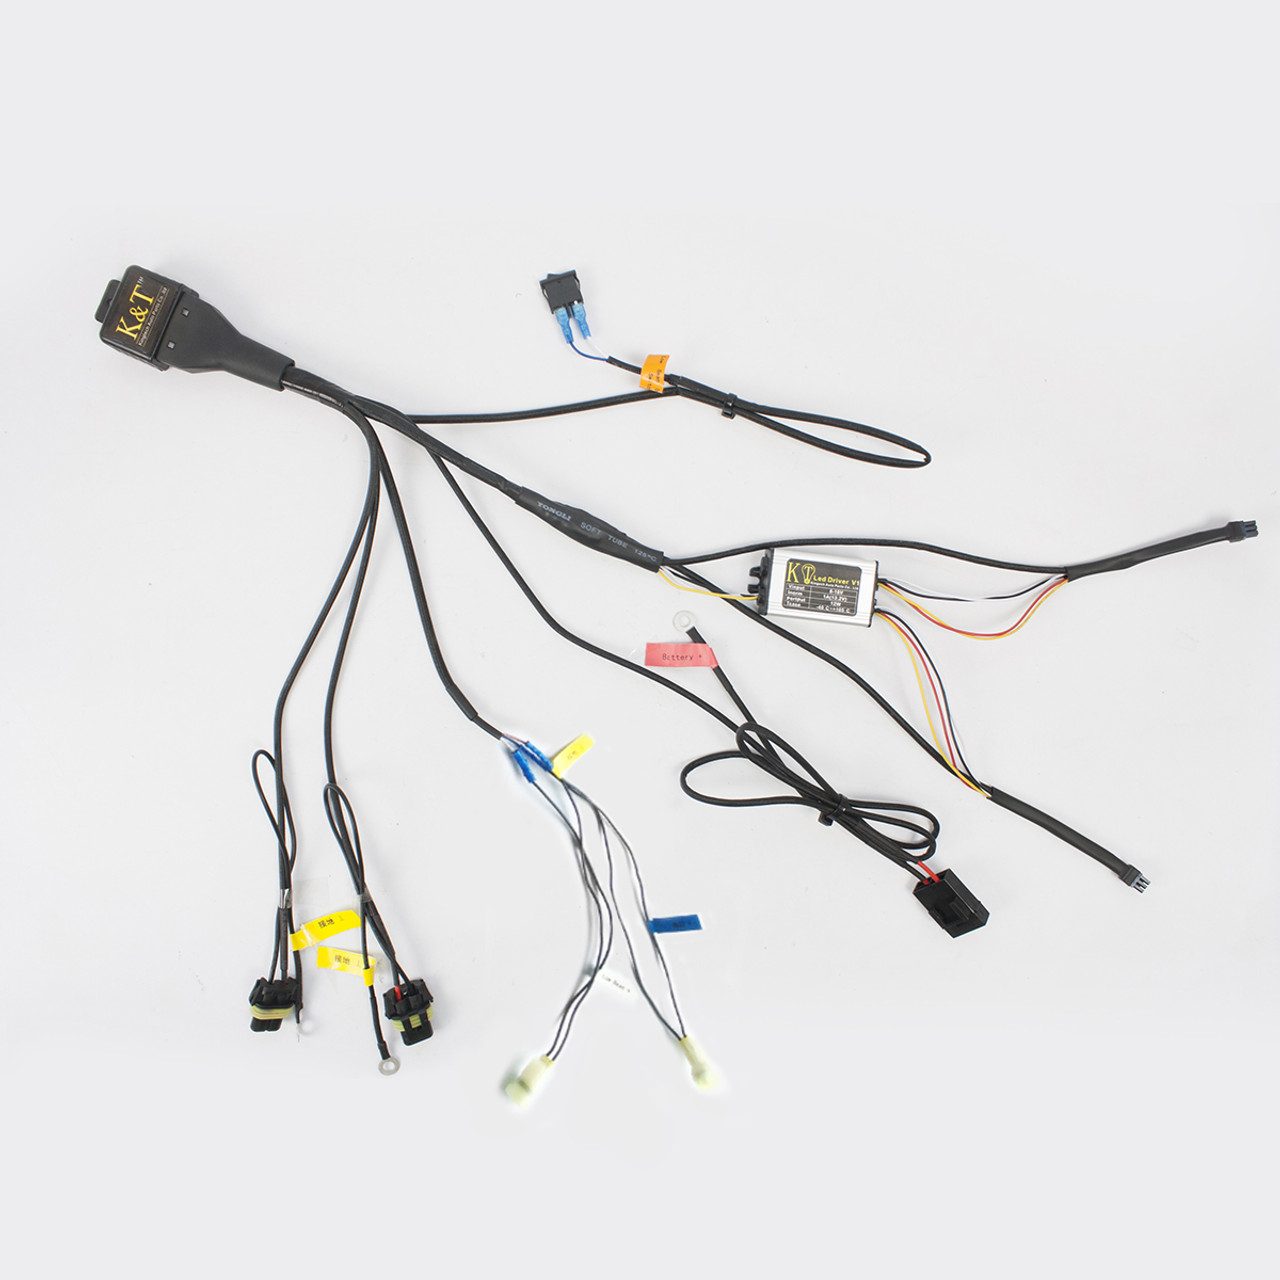 Tailormade Relay Wiring Harness For Kt Honda Custom Headlight. Tailormade Relay Wiring Harness For Kt Honda Custom Headlight. Wiring. Relay Wire Harness At Scoala.co